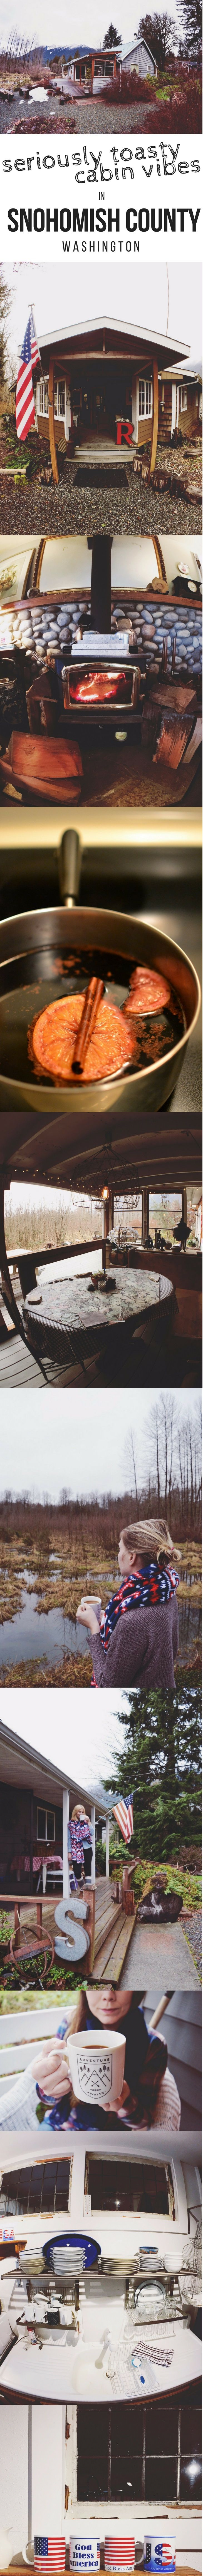 Image Via: Gypset Jenn We Went to Washington For Some Seriously Toasty Cabin Vibes (PHOTOS) via Canadian Traveller magazine.   #Washington #Darrington #Snohomish #brewery #rafting #see #do #eat #drink #highlights #cabin #cozy #getaway #escape #vacation #pnw #pnwwonderland